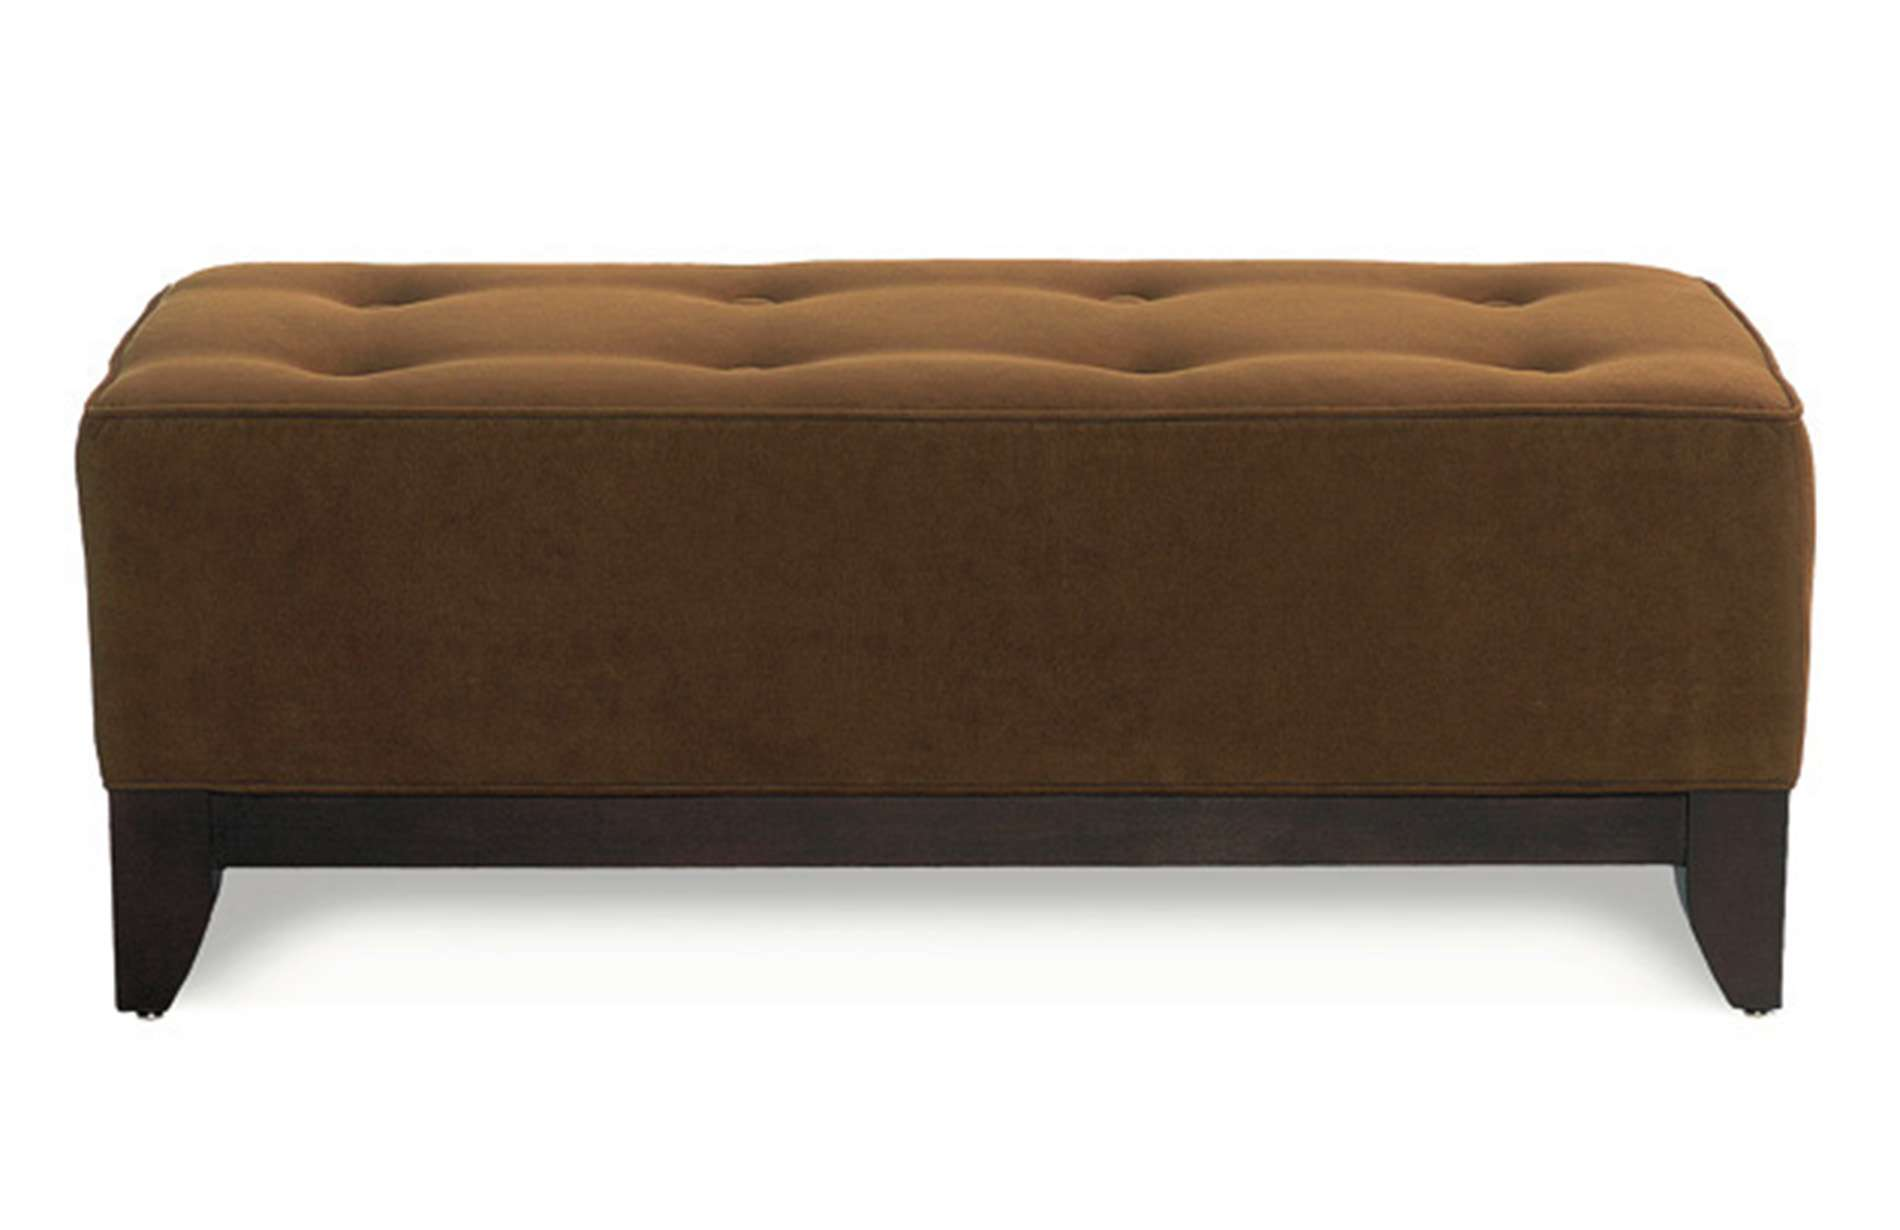 brooklyn ottoman rowe furniture rowe furniture